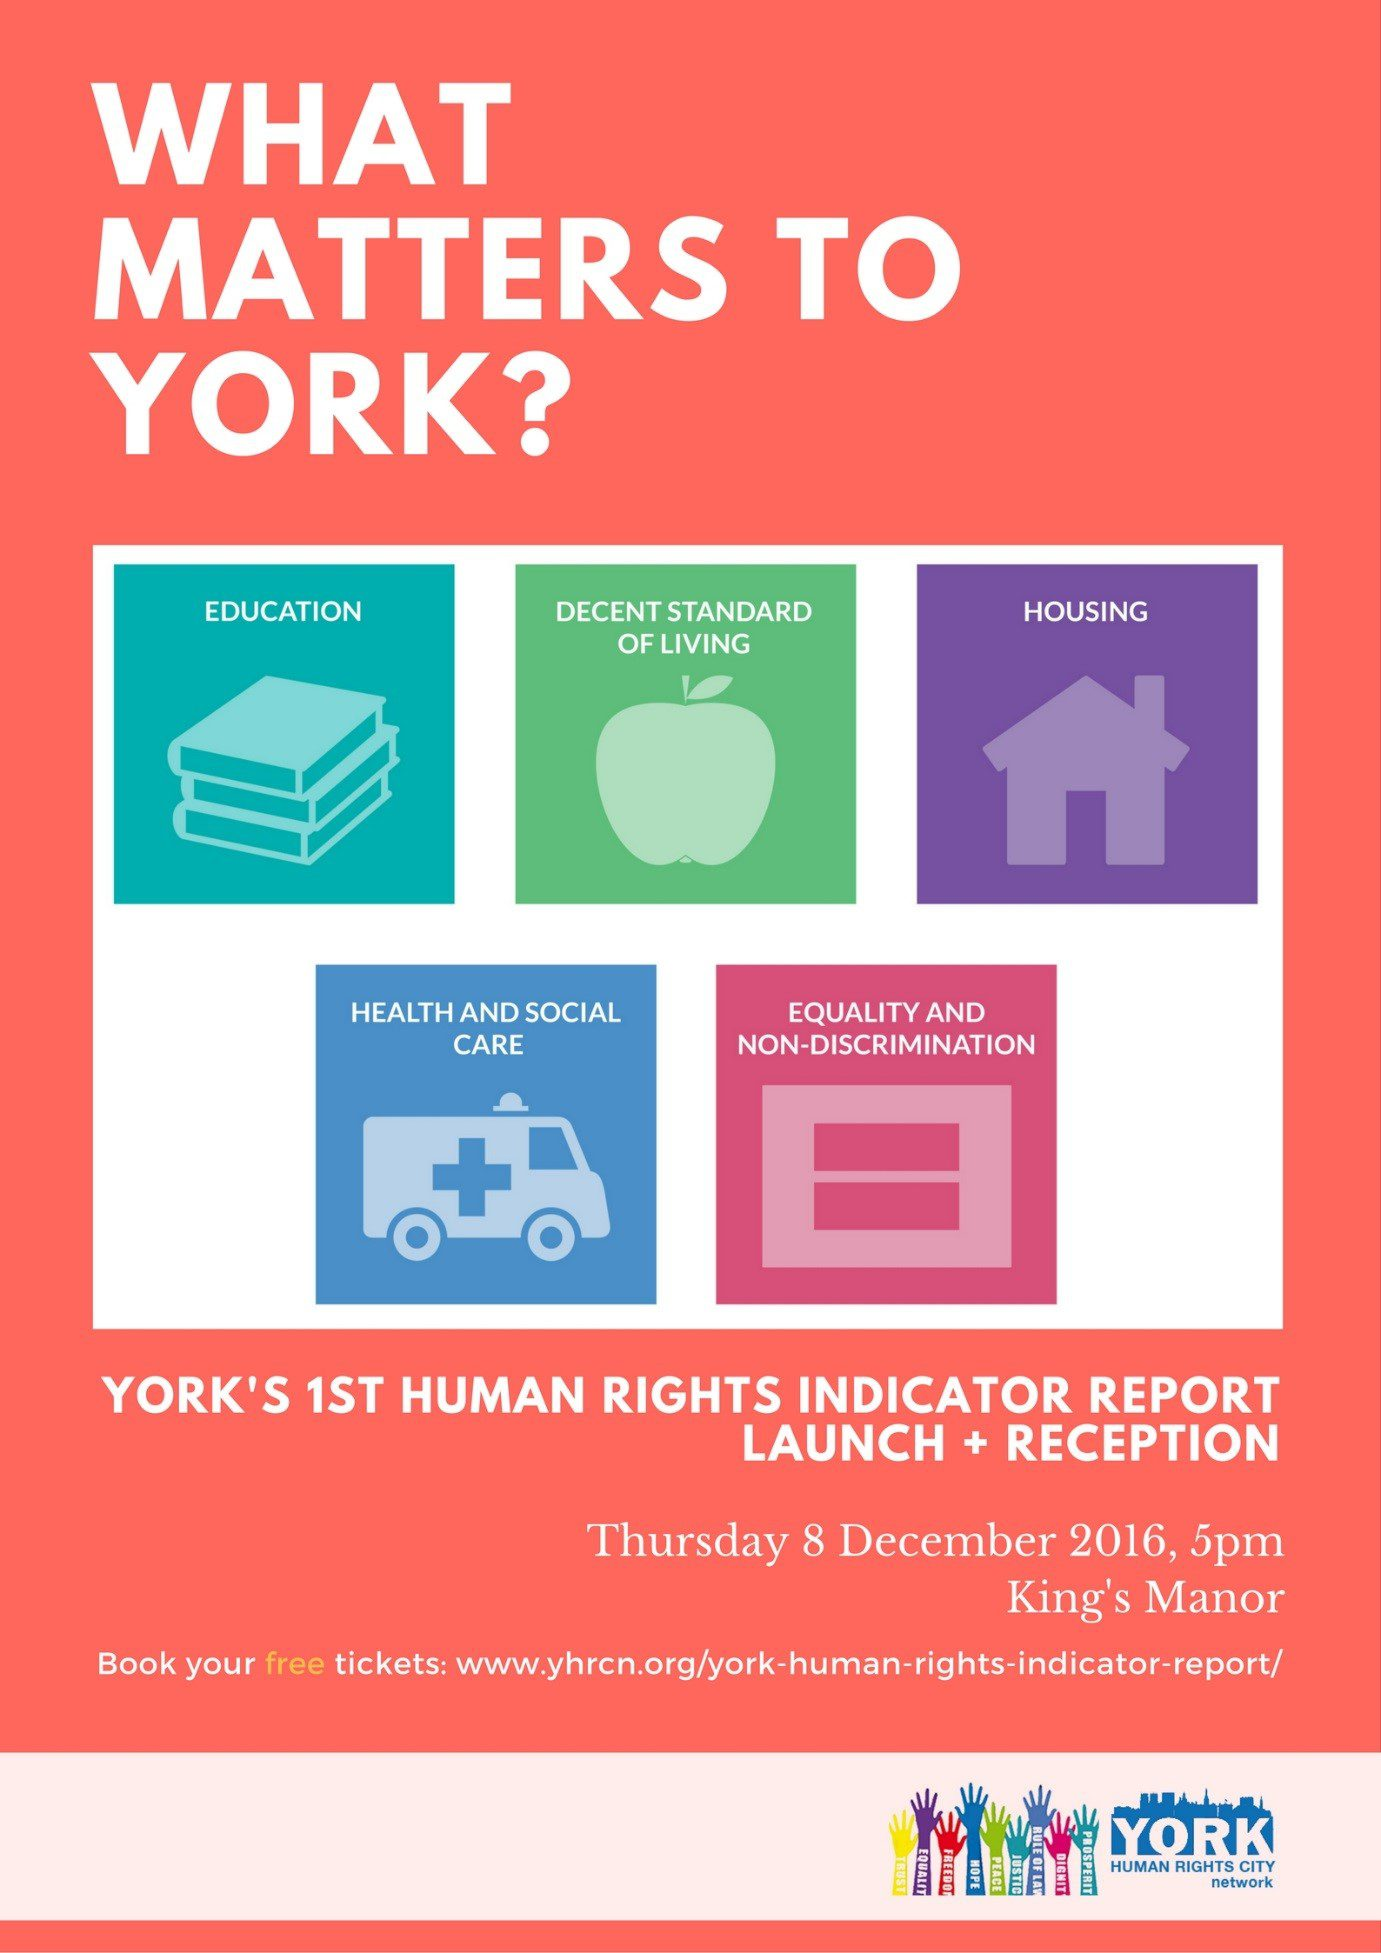 what do human rights mean in york